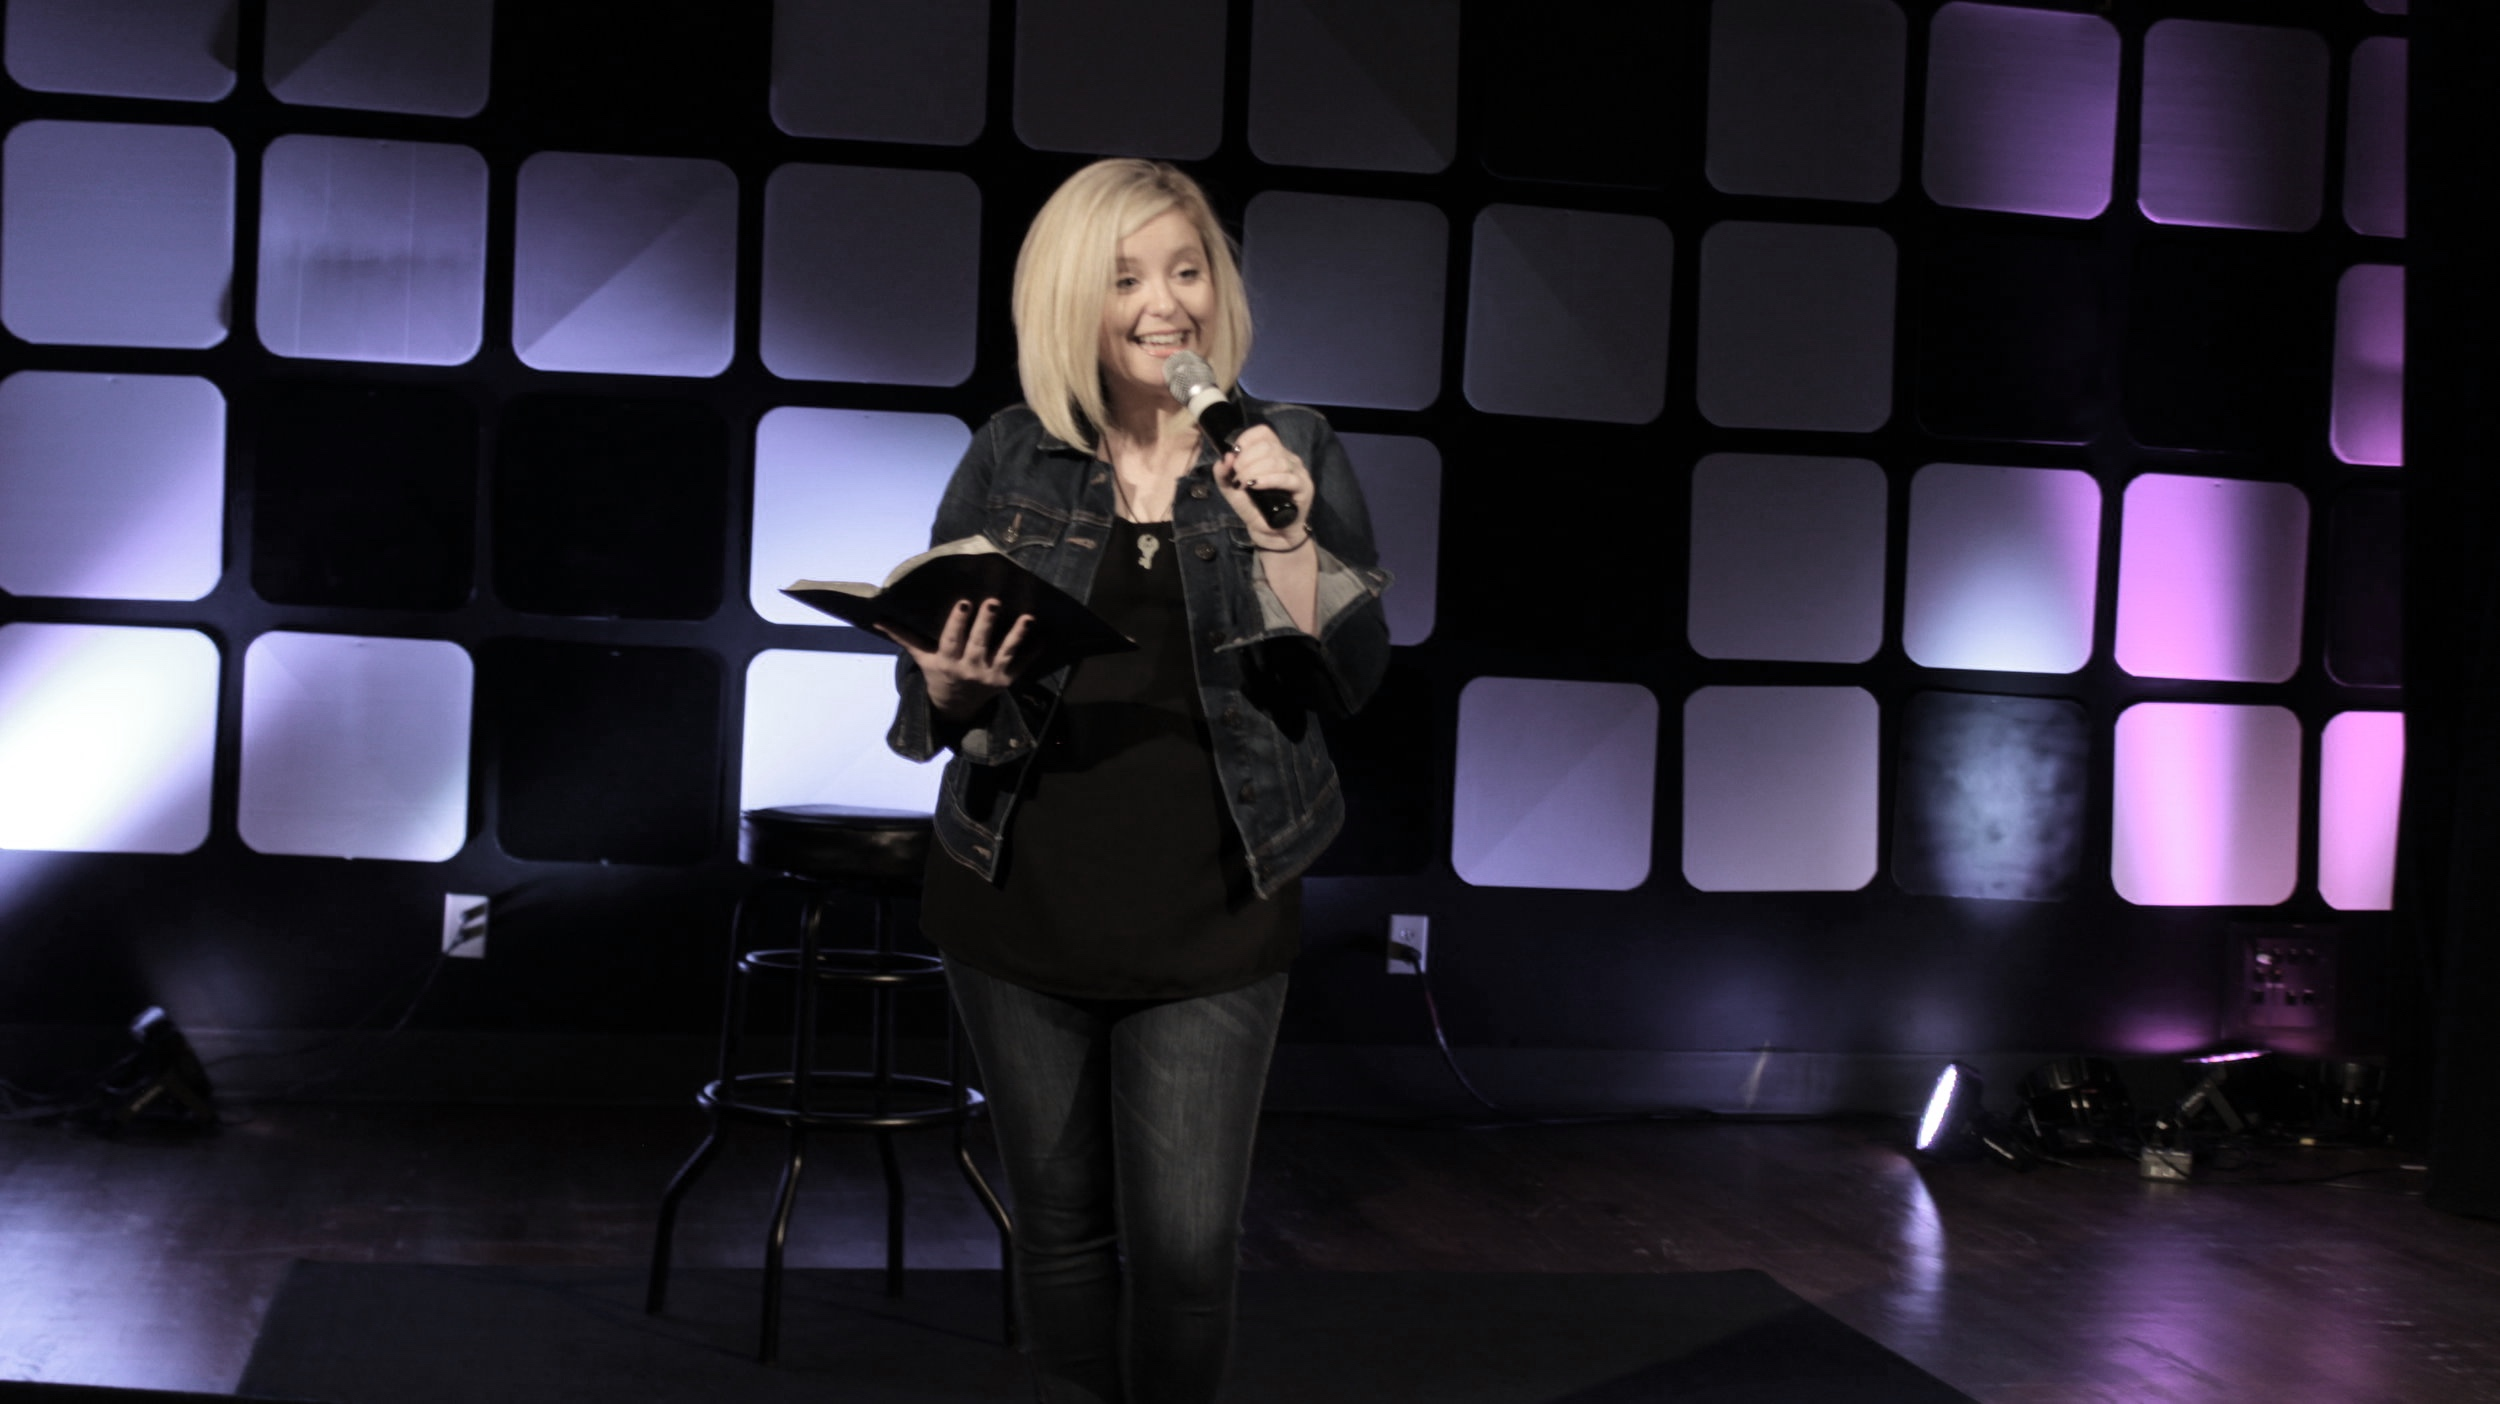 MOMS' NIGHT OUT - COFFEE / LAUGH / WORSHIP